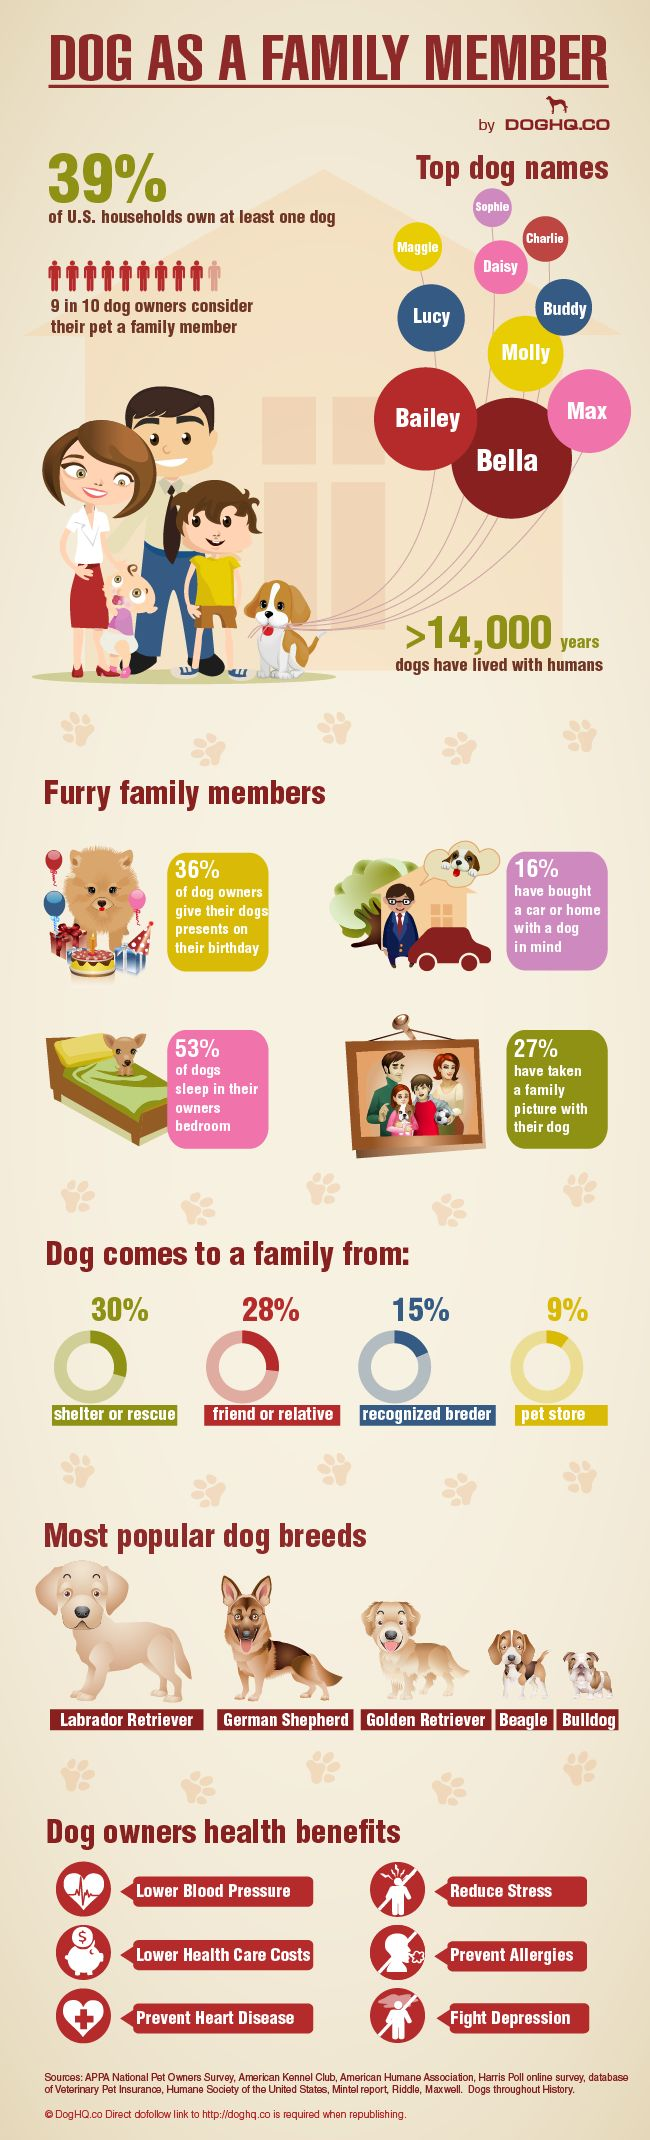 """DogHQ team just released """"Dog as a family member"""" infographic.    It contains interesting facts and stats including:    how many dog owners consider their pet a family member  top dog names  where from dog comes to a family  most popular dog breeds  and many other interesting facts @Amy Lyons Lyons Lyons Lyons Lyons Lyons Felix Camire  Love this :) and I REALLY love my girls :)"""